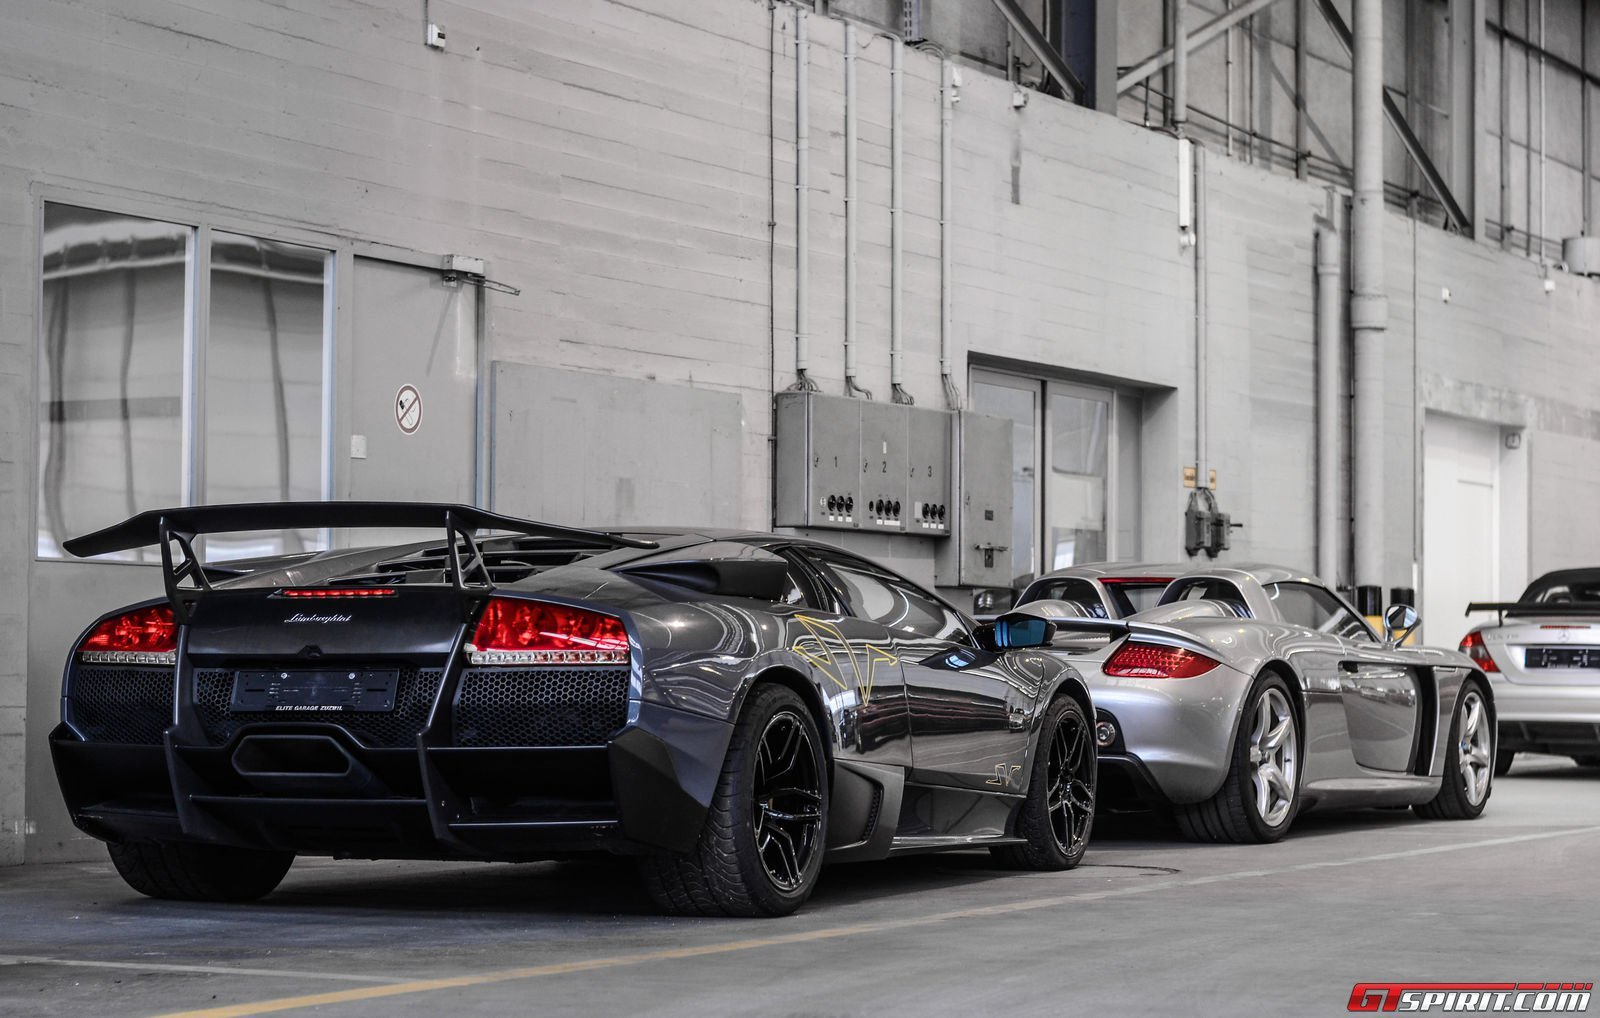 Garage Sports Car : A peak inside garage packed with sports luxury and